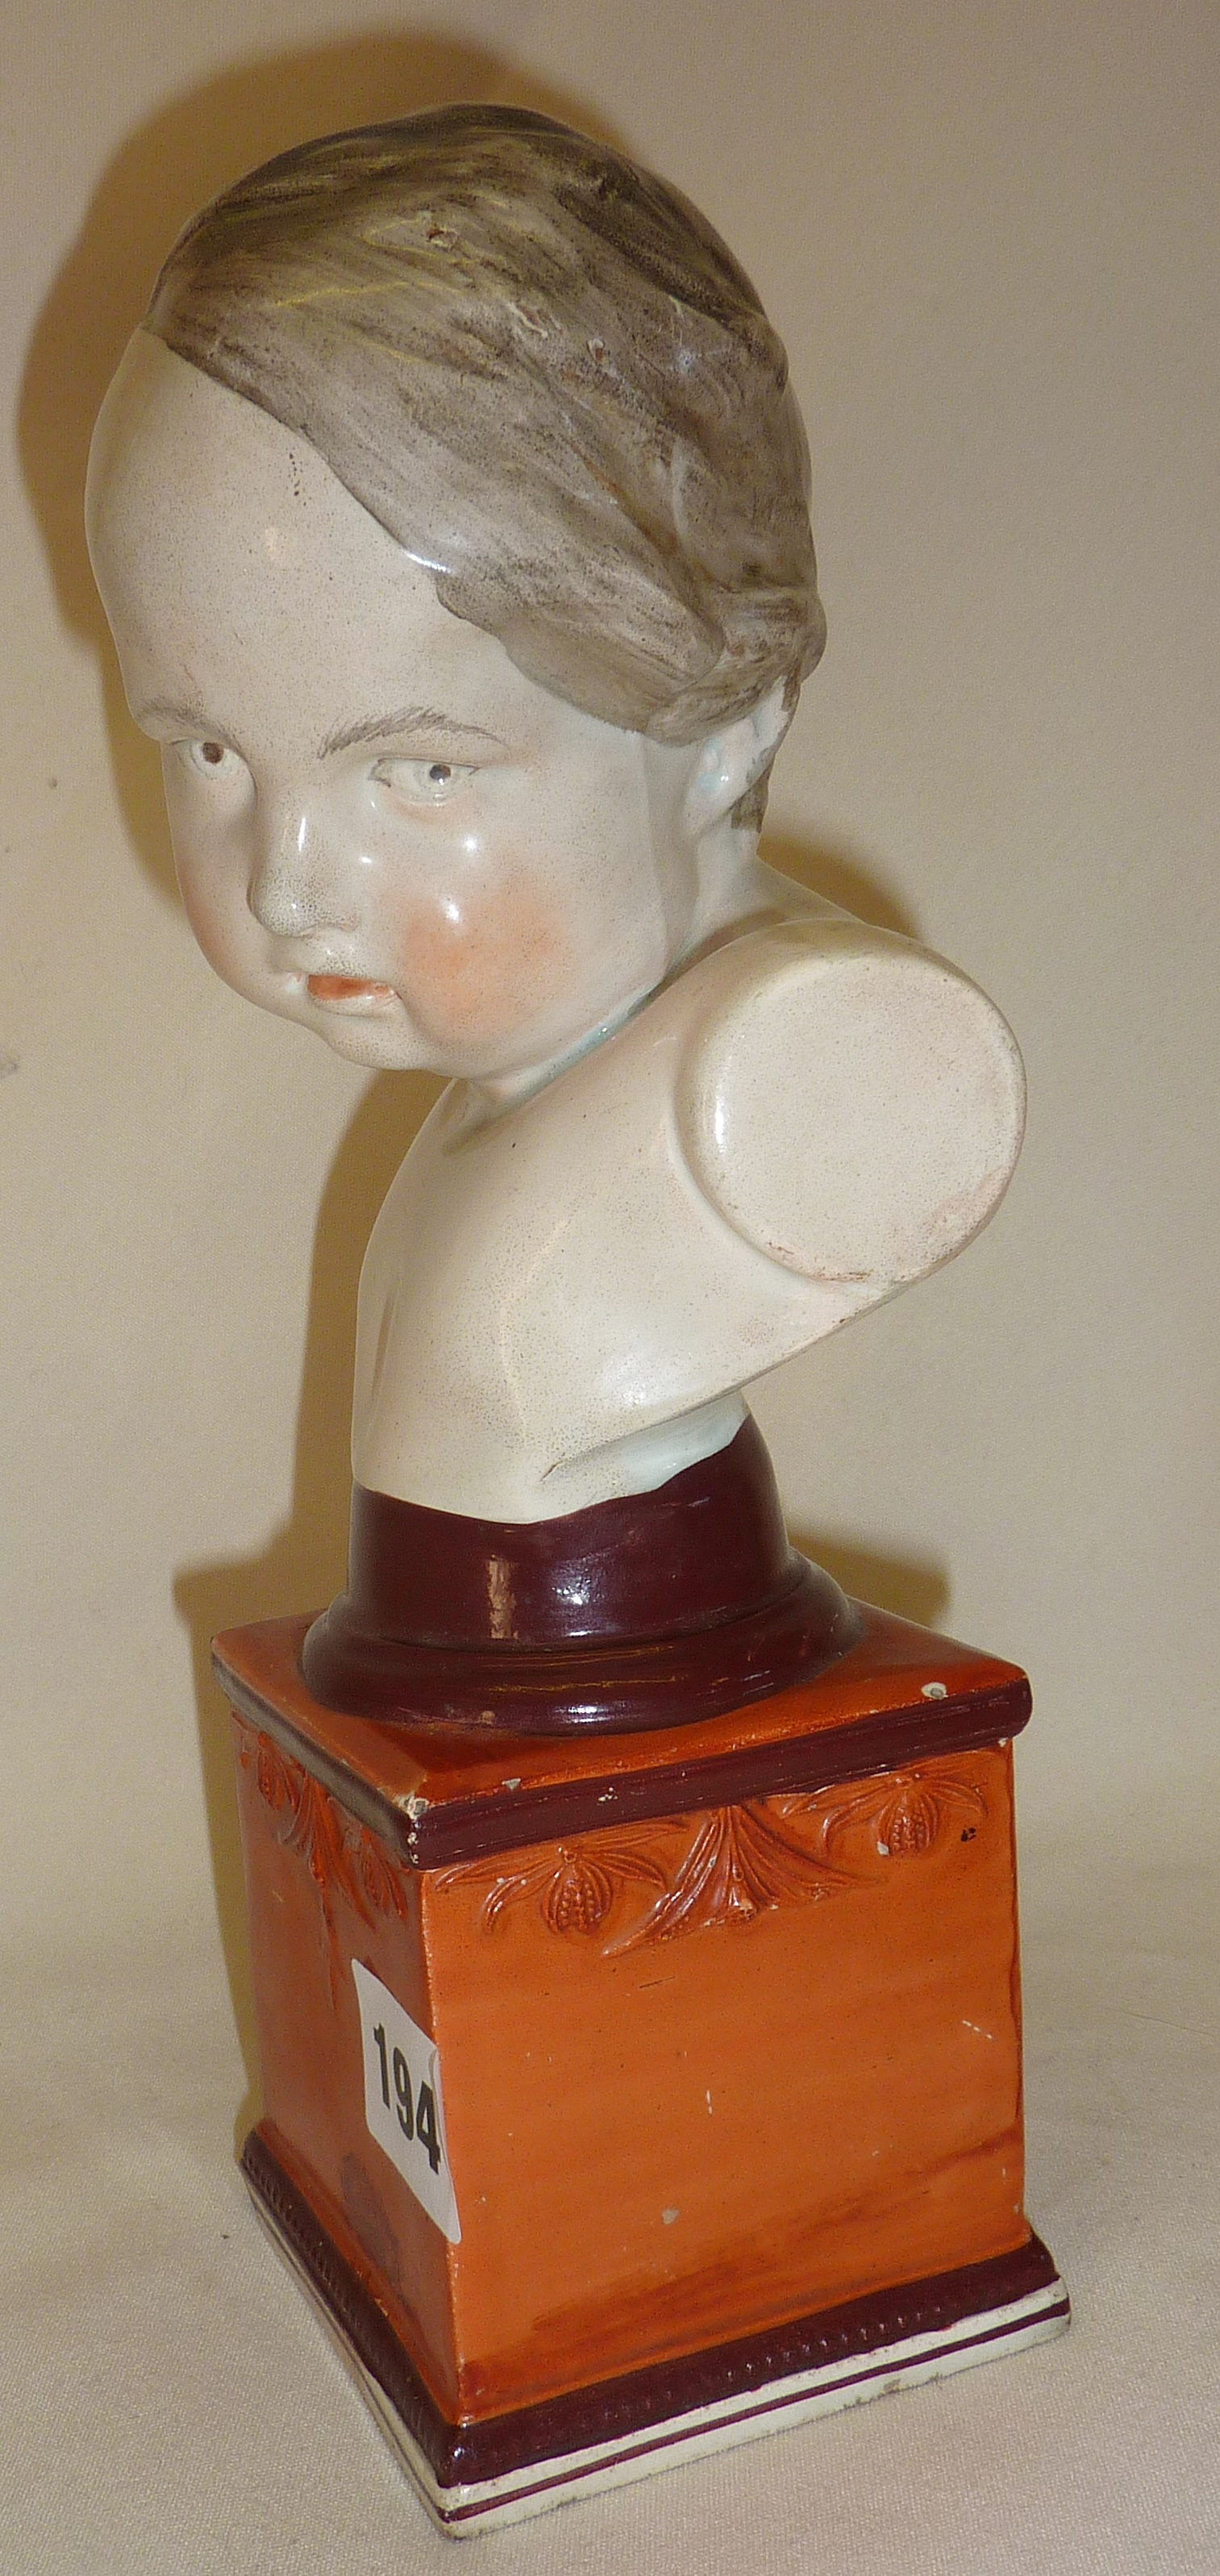 """Lot 194 - Staffordshire pearlware bust of a young boy, circa 1800, approx, 10.5"""" high"""